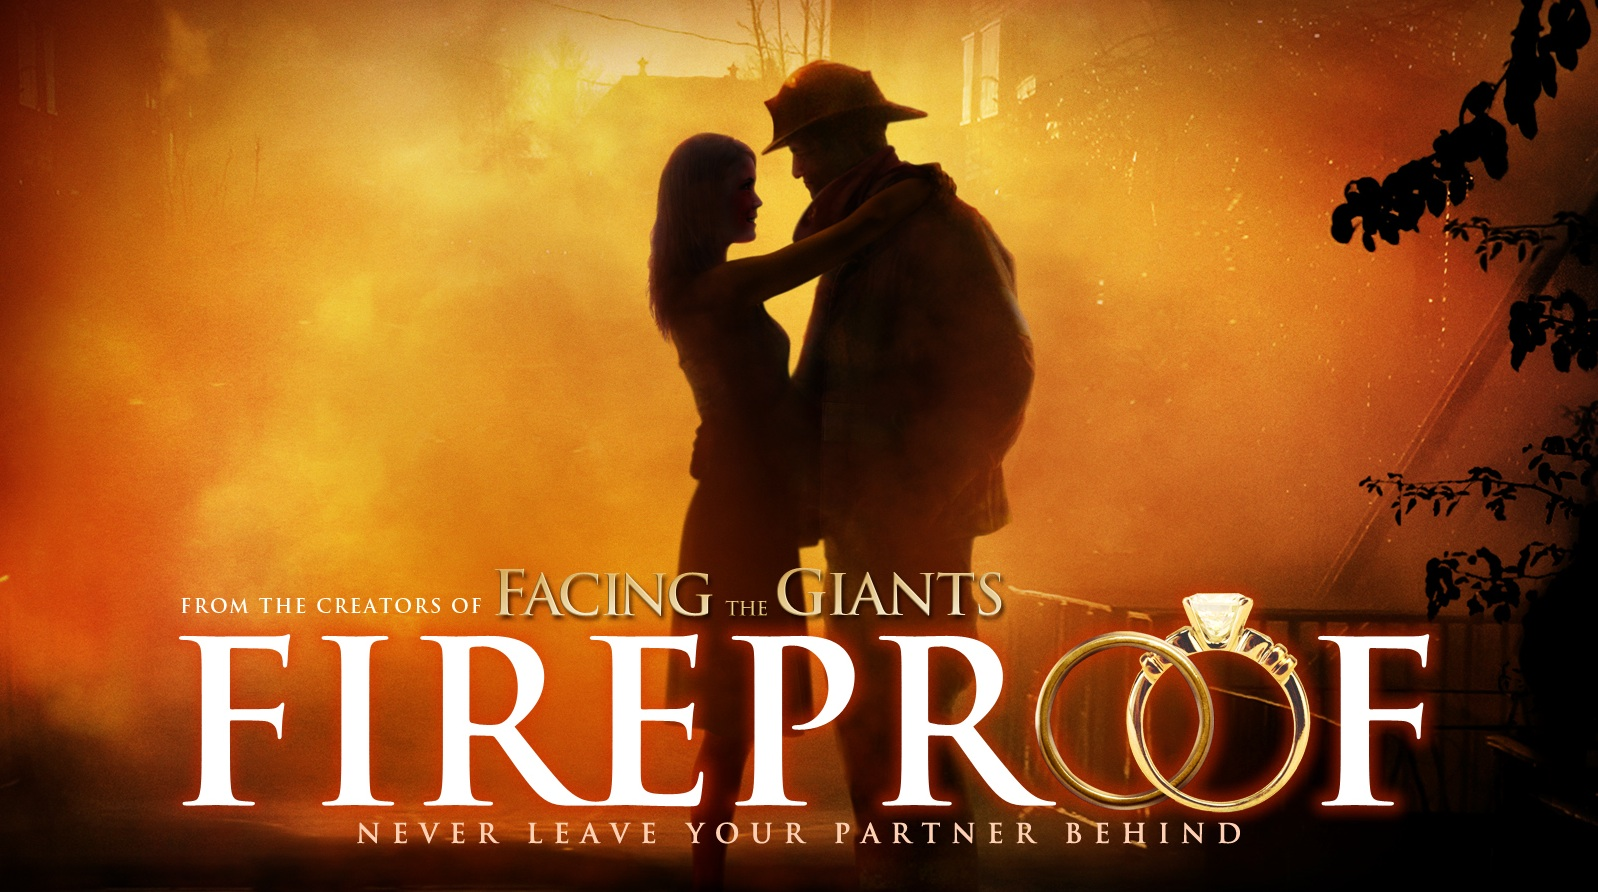 fireproof summary and movie review